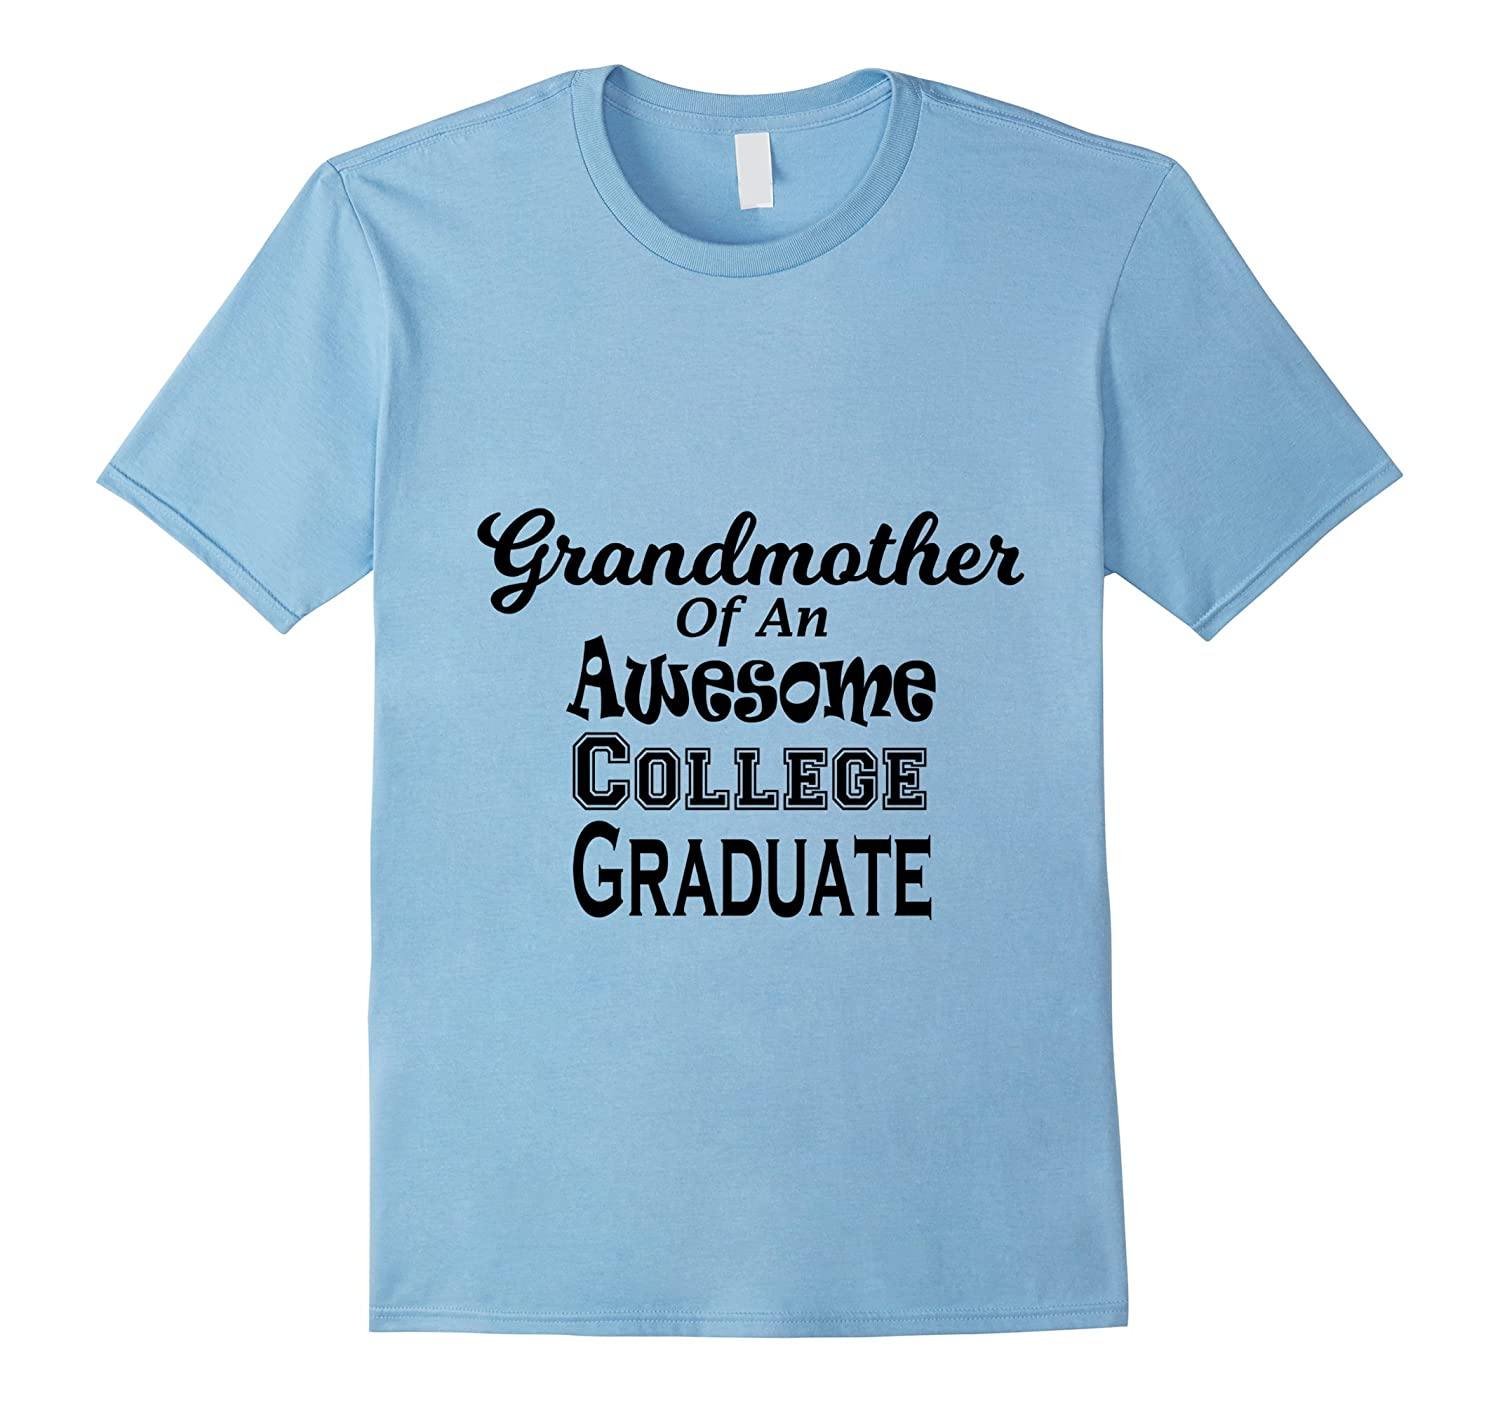 Grandmother of an Awesome College Graduate Shirt Graduation-Vaci